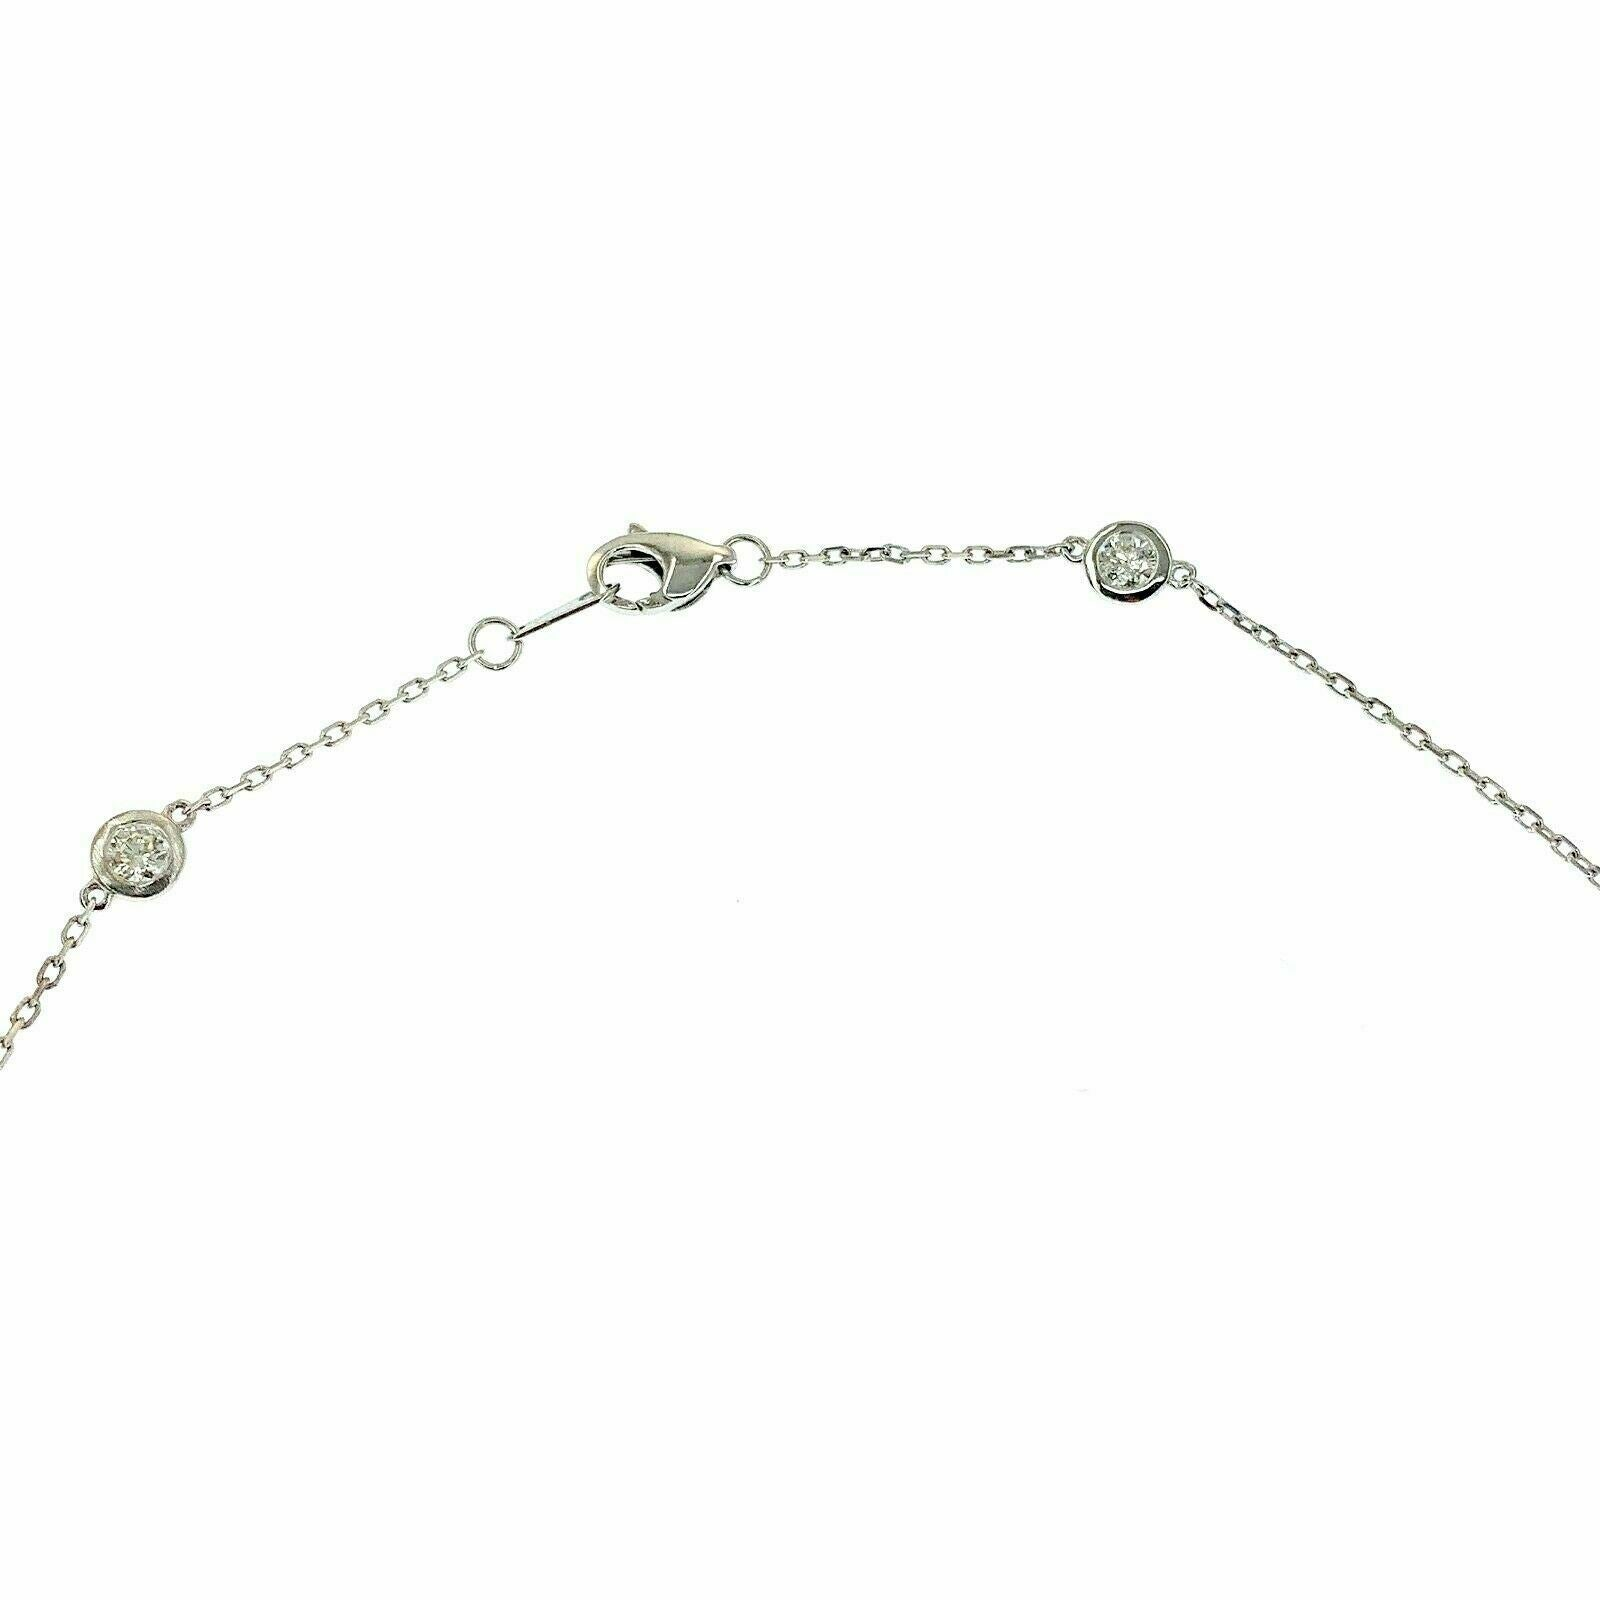 1.22 Carats t.w. Hand Assembled Diamond by The Yard Necklace Chain 14K 20 Inches